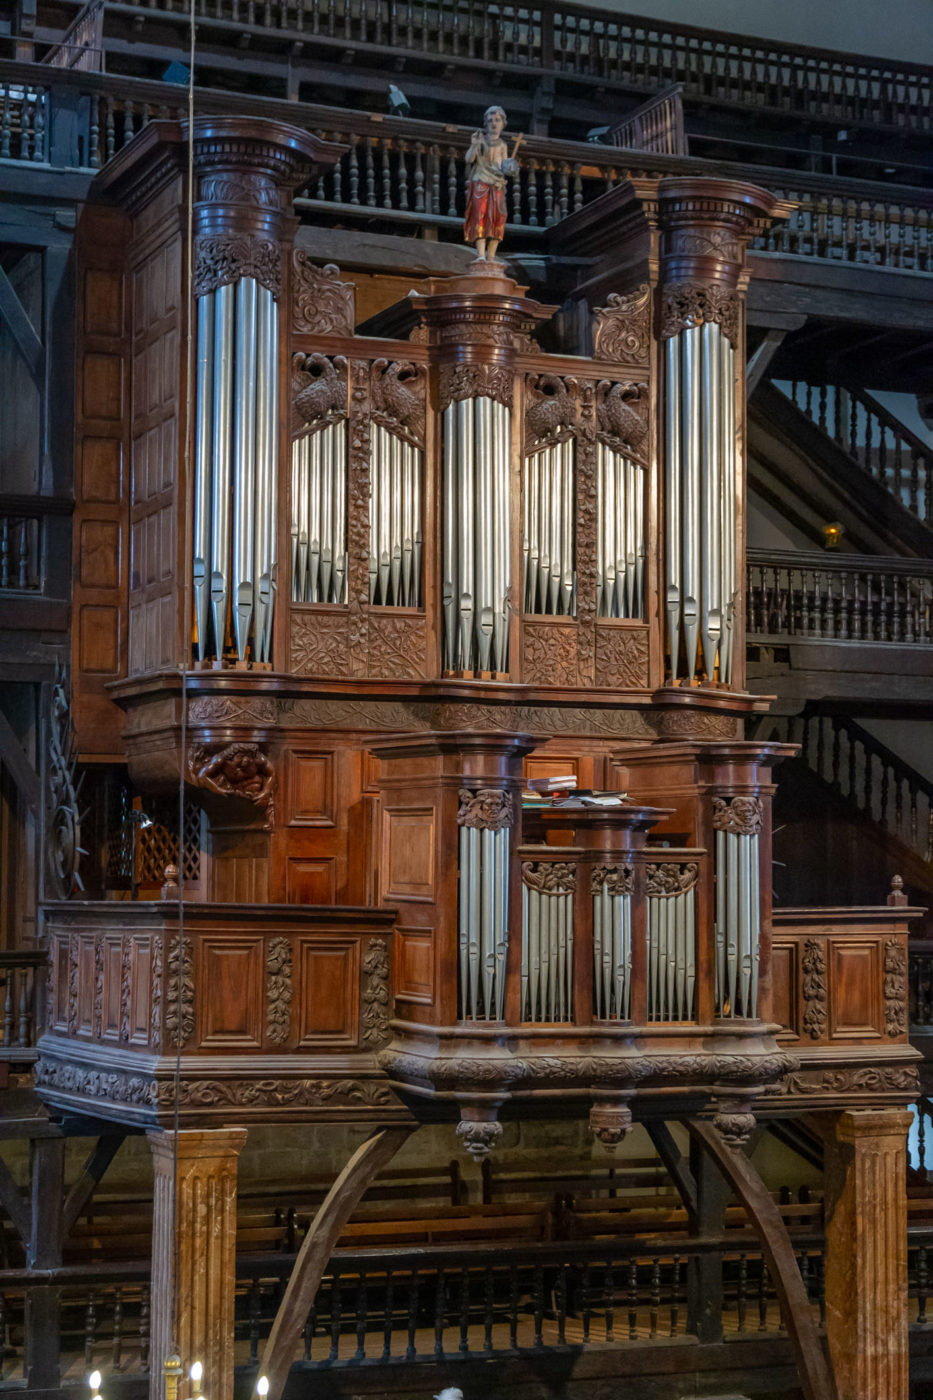 Saint Jean De Luz, Berriak 93, Orgue De L'église Saint Jean Baptiste